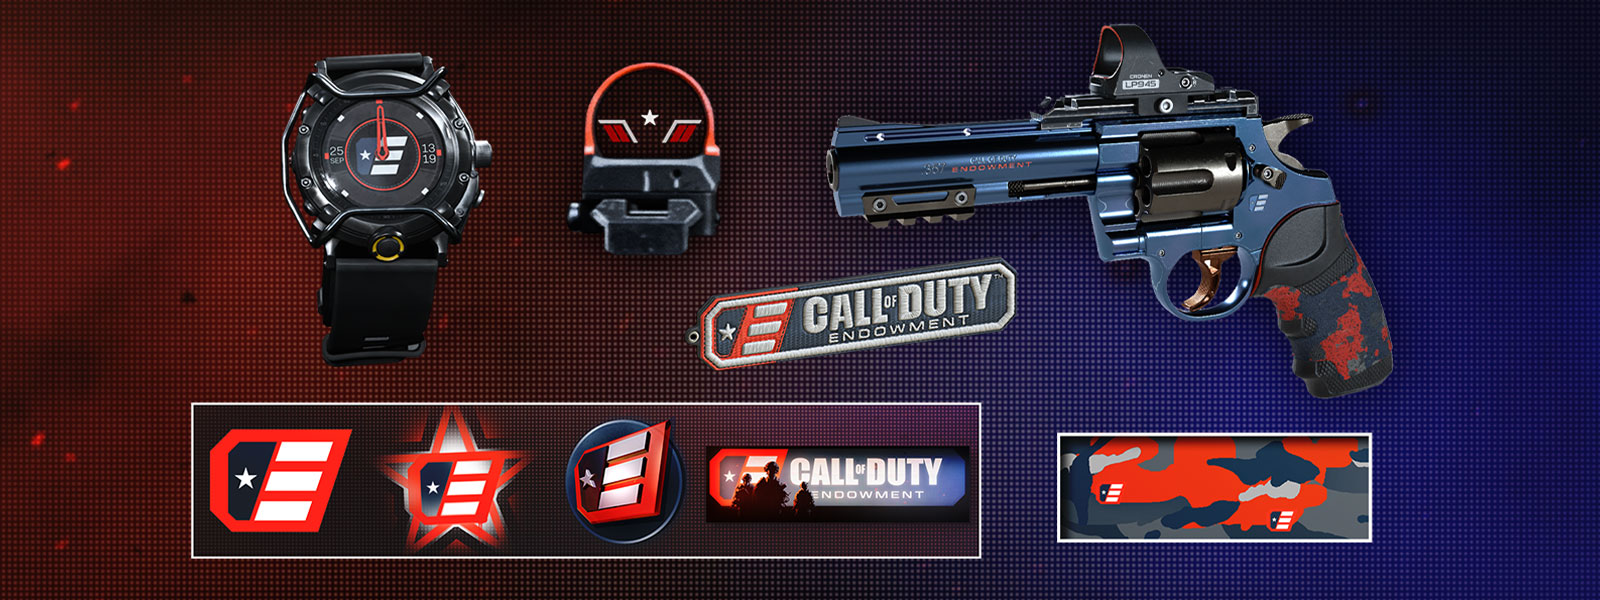 Sideview of the Defender Pistol with Call of Duty endowment themed watch, scope, and dog tags on top of a textured background